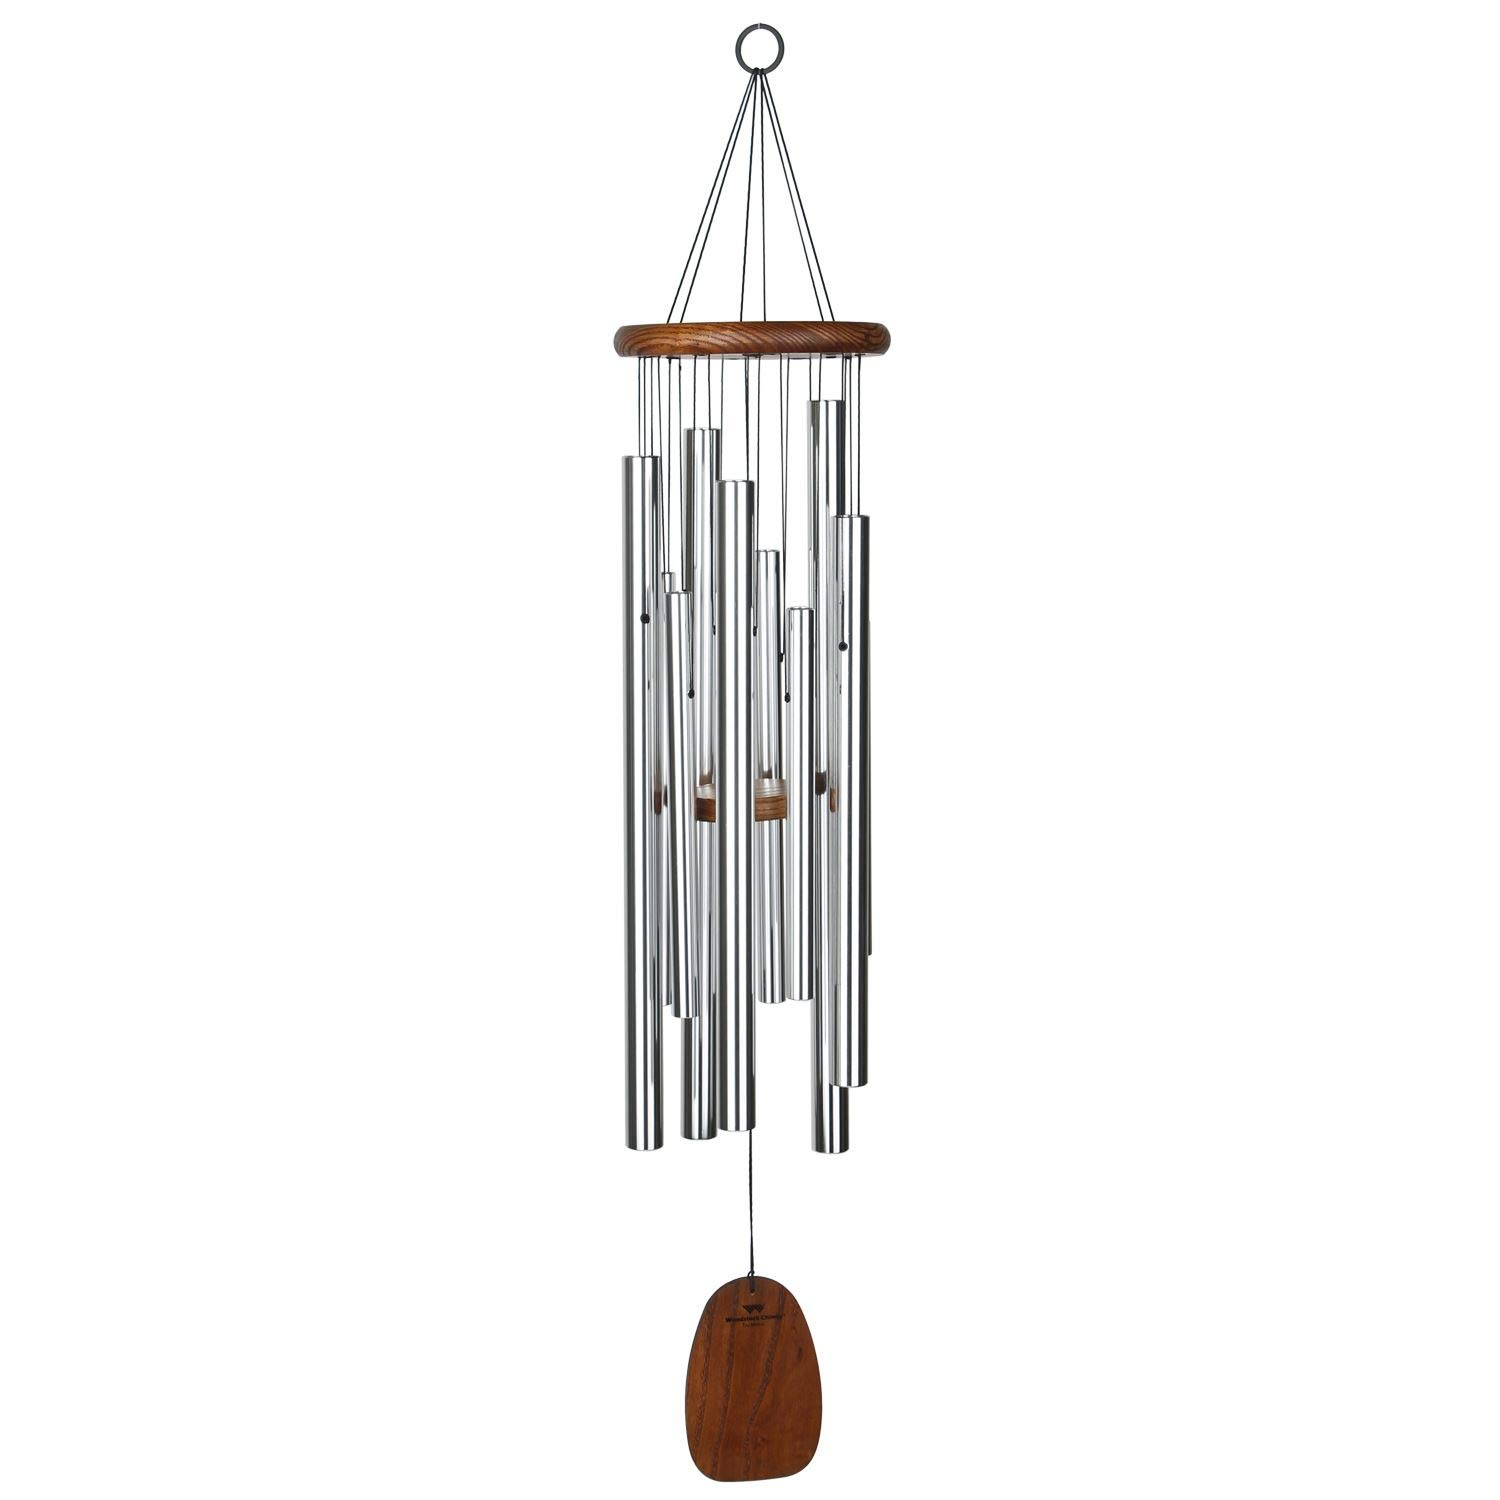 Woodstock Chimes MMTM Magical Mystery Wind Chime, Taj Mahal